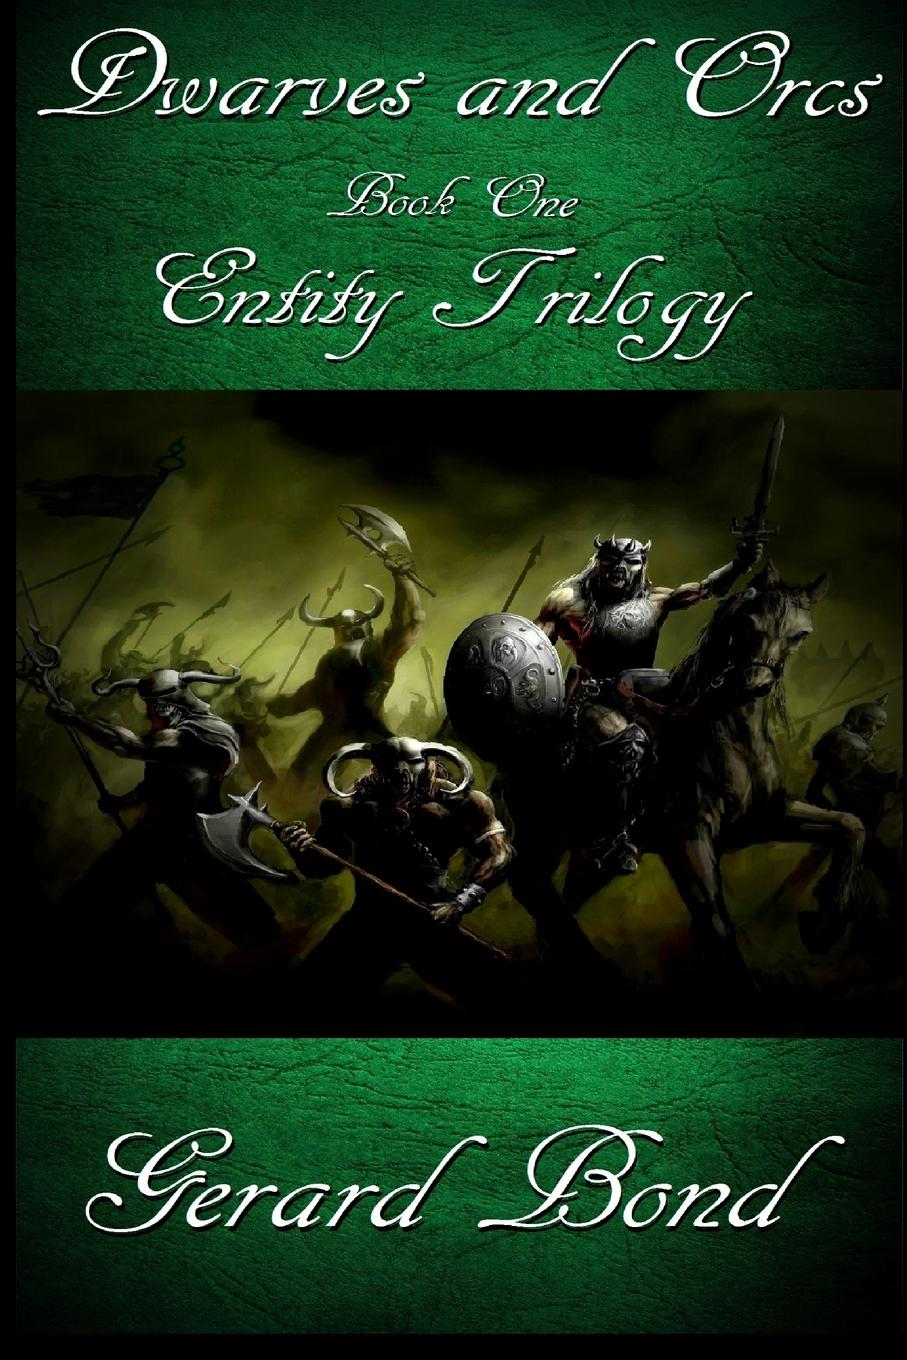 Gerard Bond Dwarves and Orcs. Book One Entity Trilogy